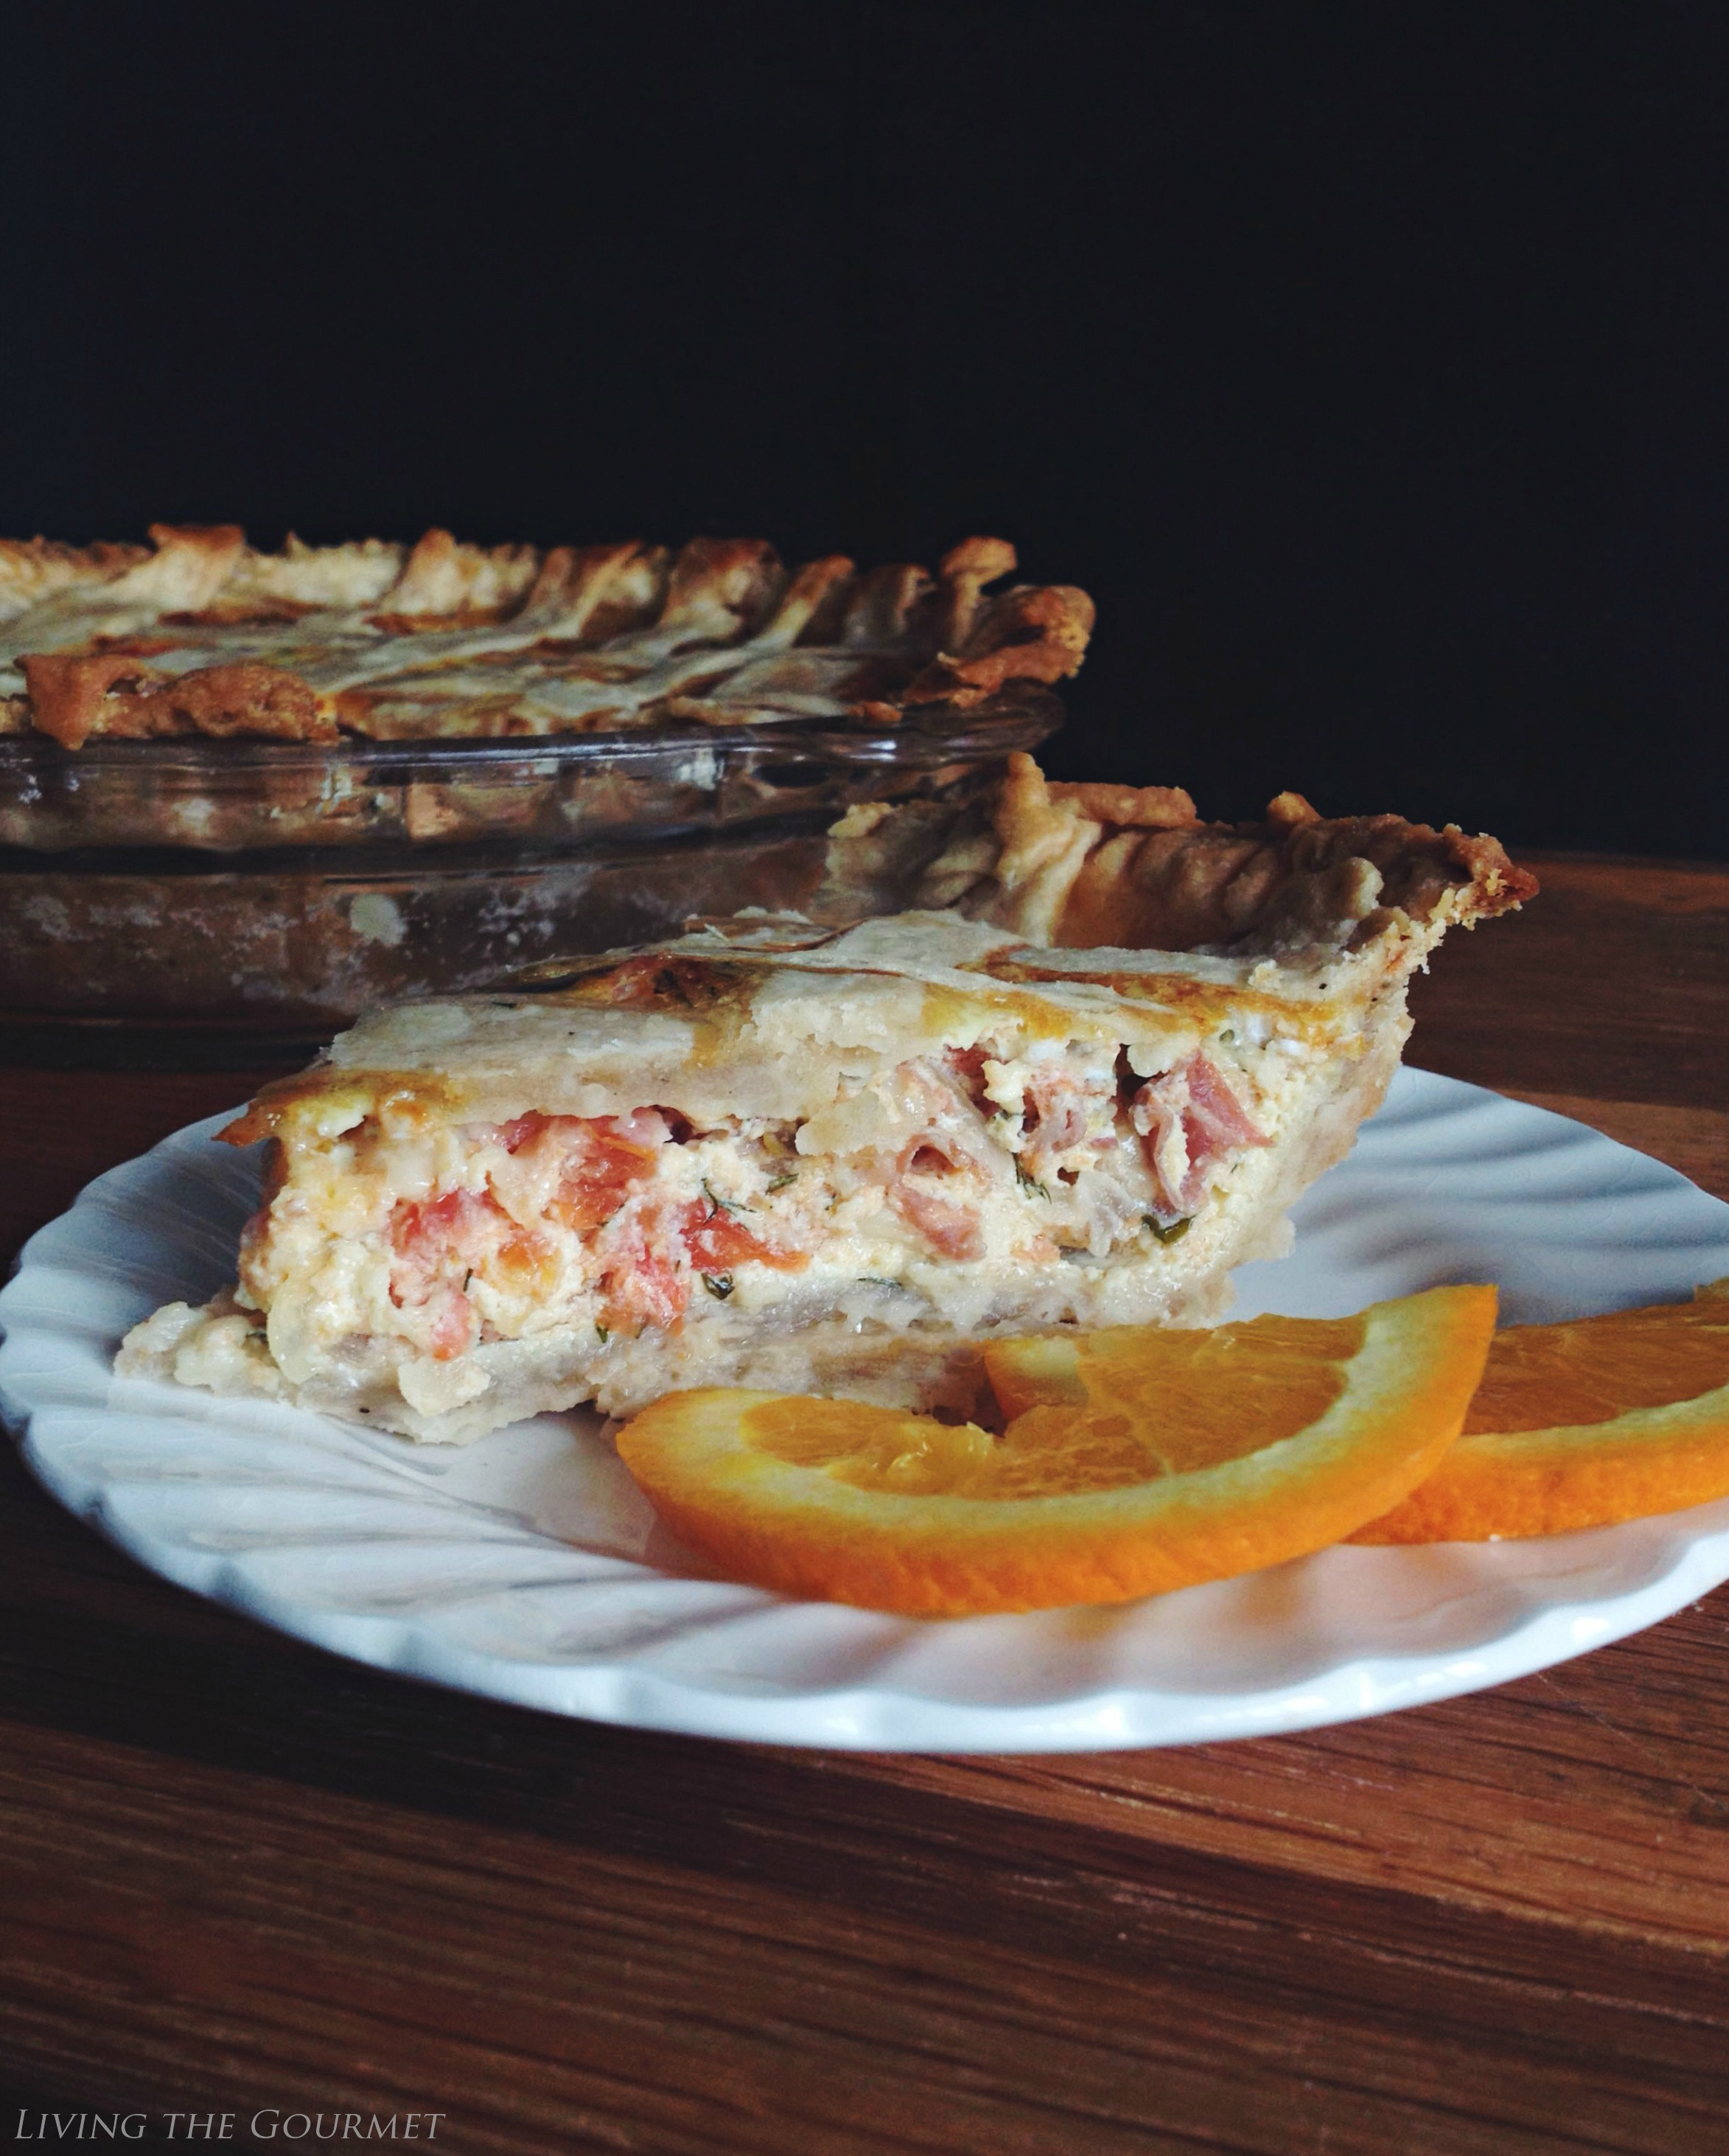 Living the Gourmet: Proscuitto and Grand Cru Cheese Quiche